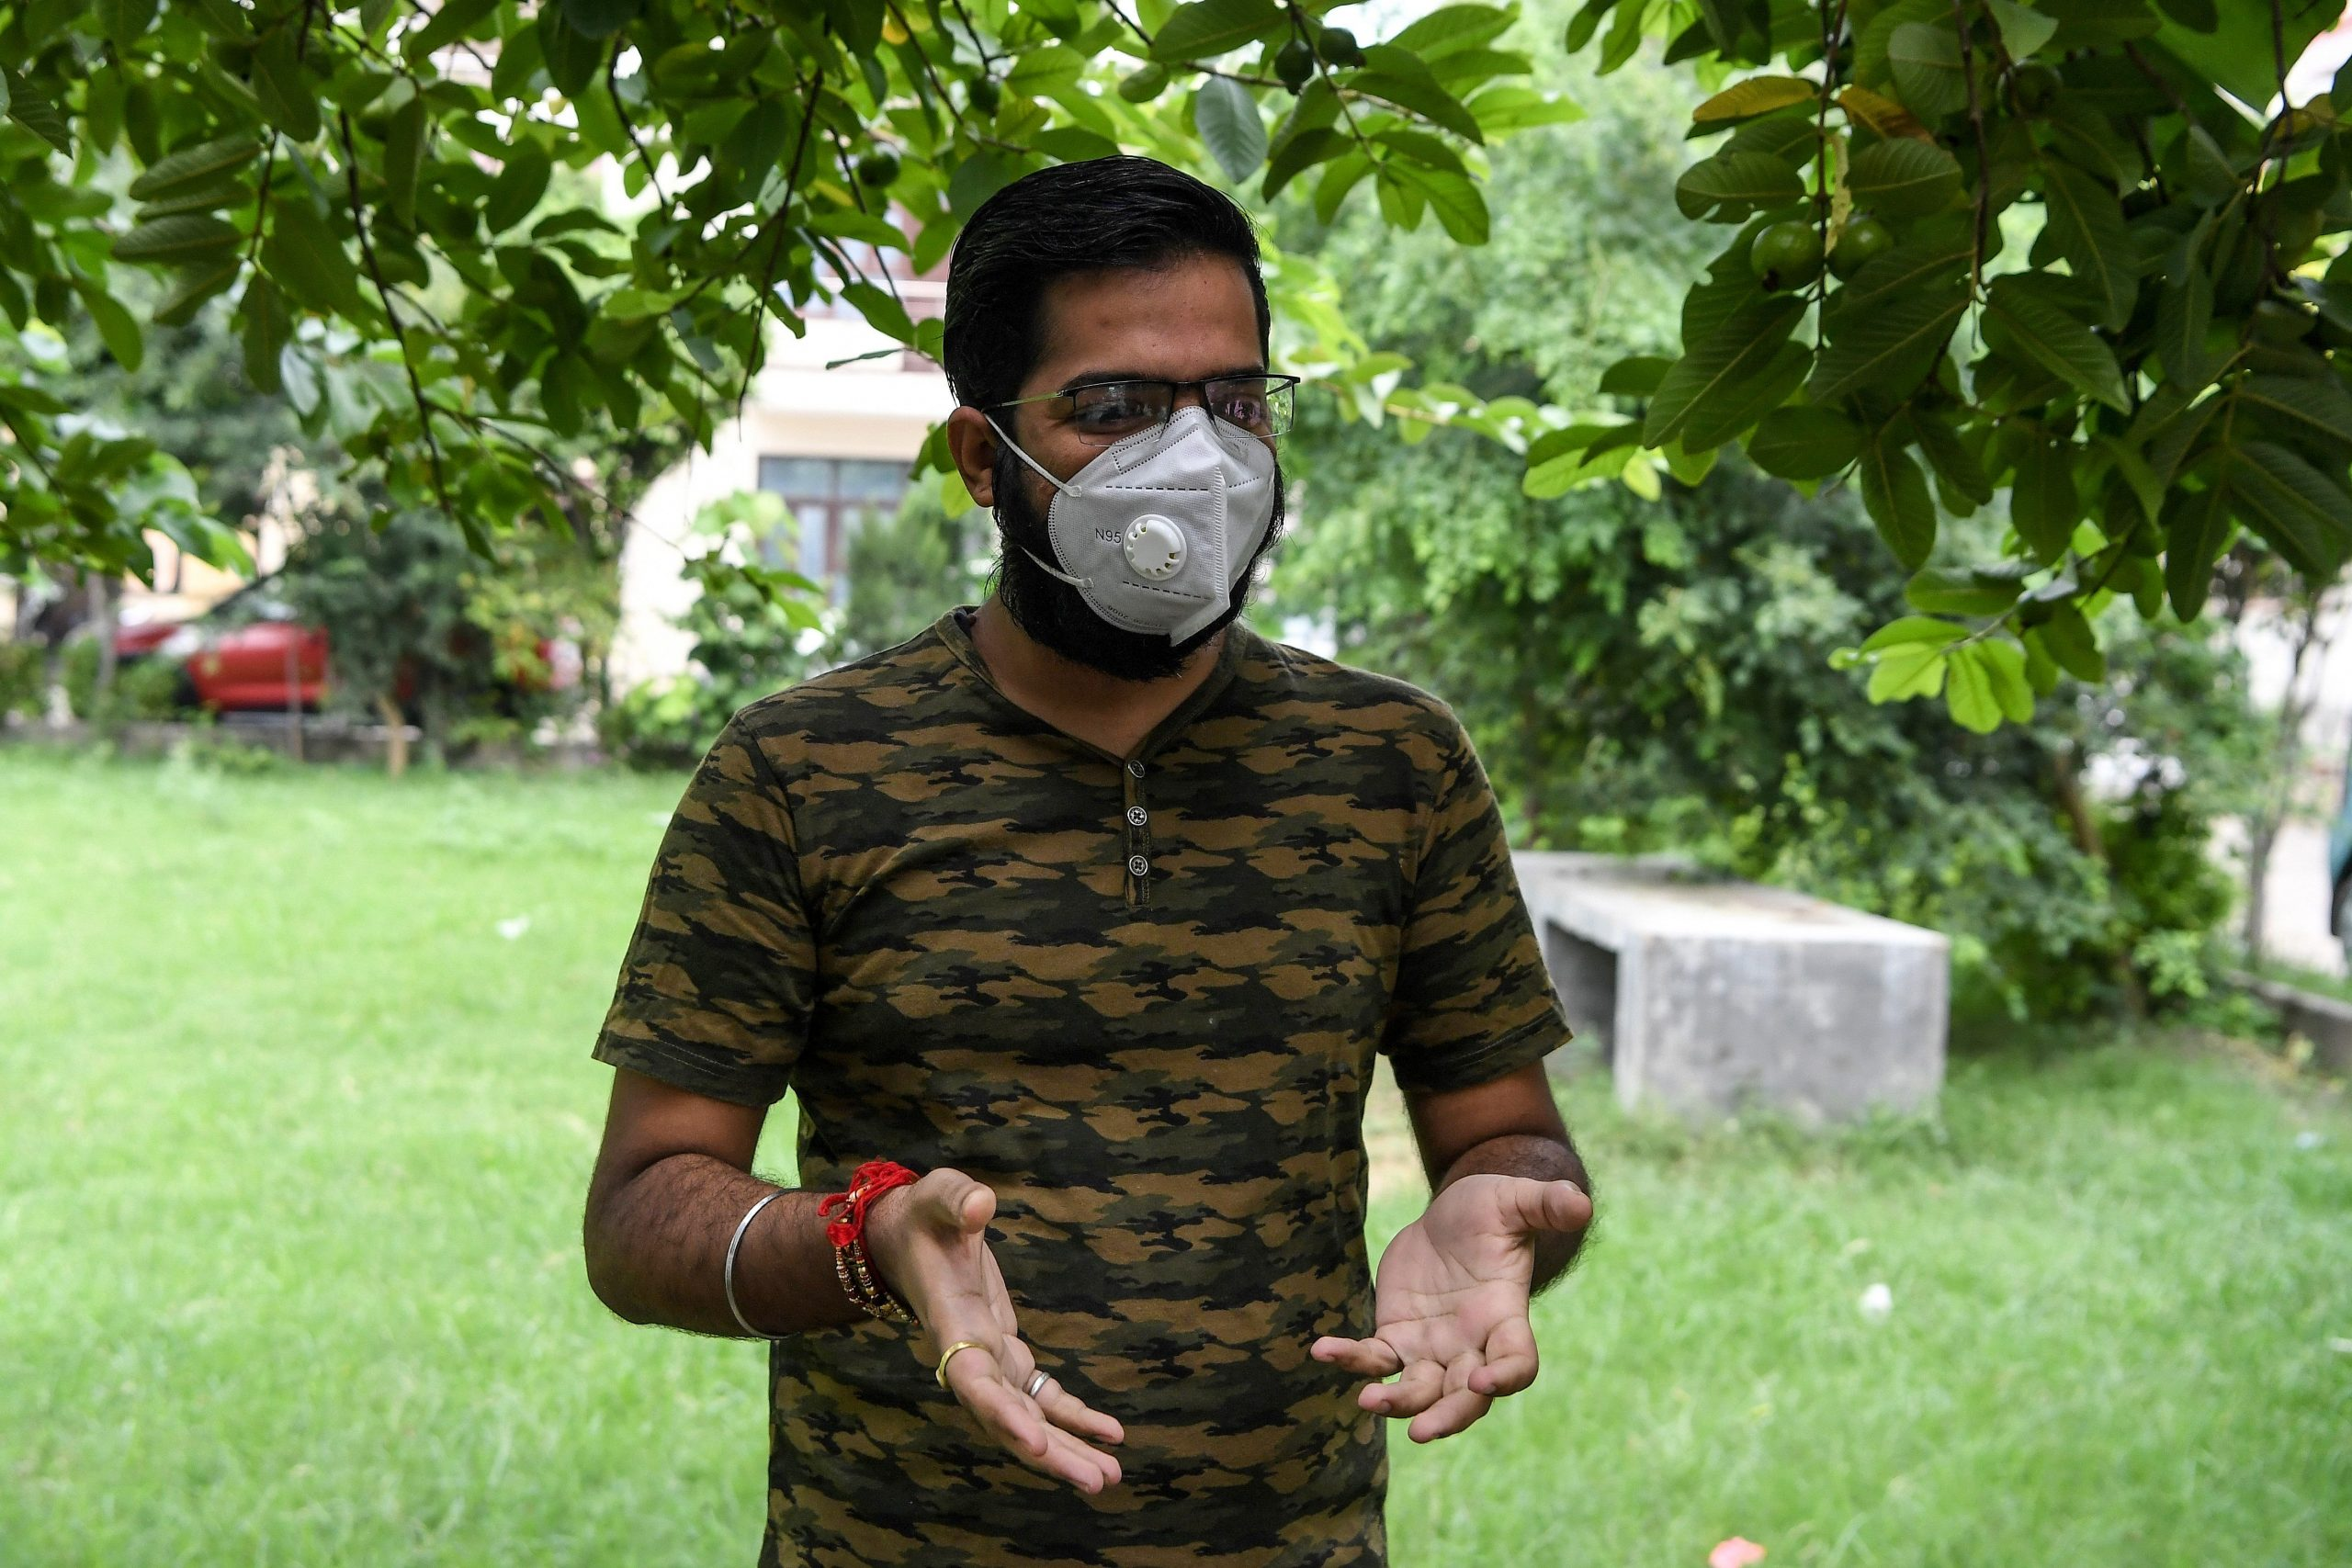 Sarthak Anand wearing a facemask gestures as he speaks during an interview with AFP at his home in Bahadurpur village of Meerut in Uttar Pradesh state. (Photo by PRAKASH SINGH/AFP via Getty Images)